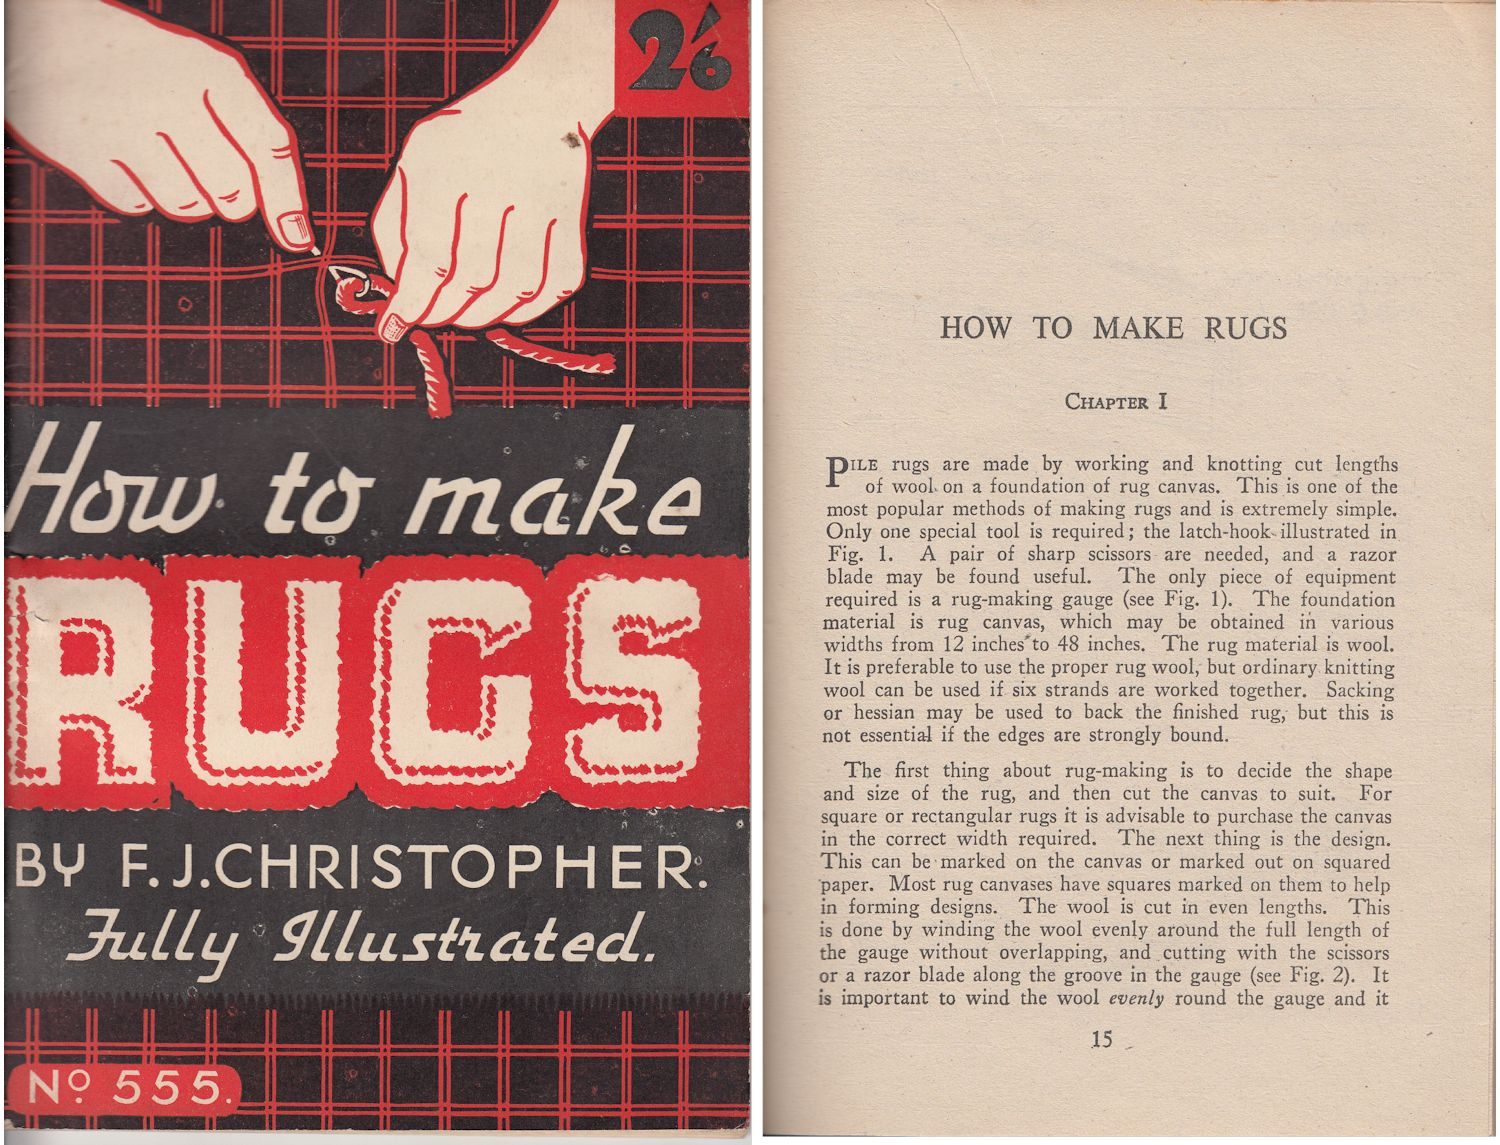 How To Make Rugs 1950